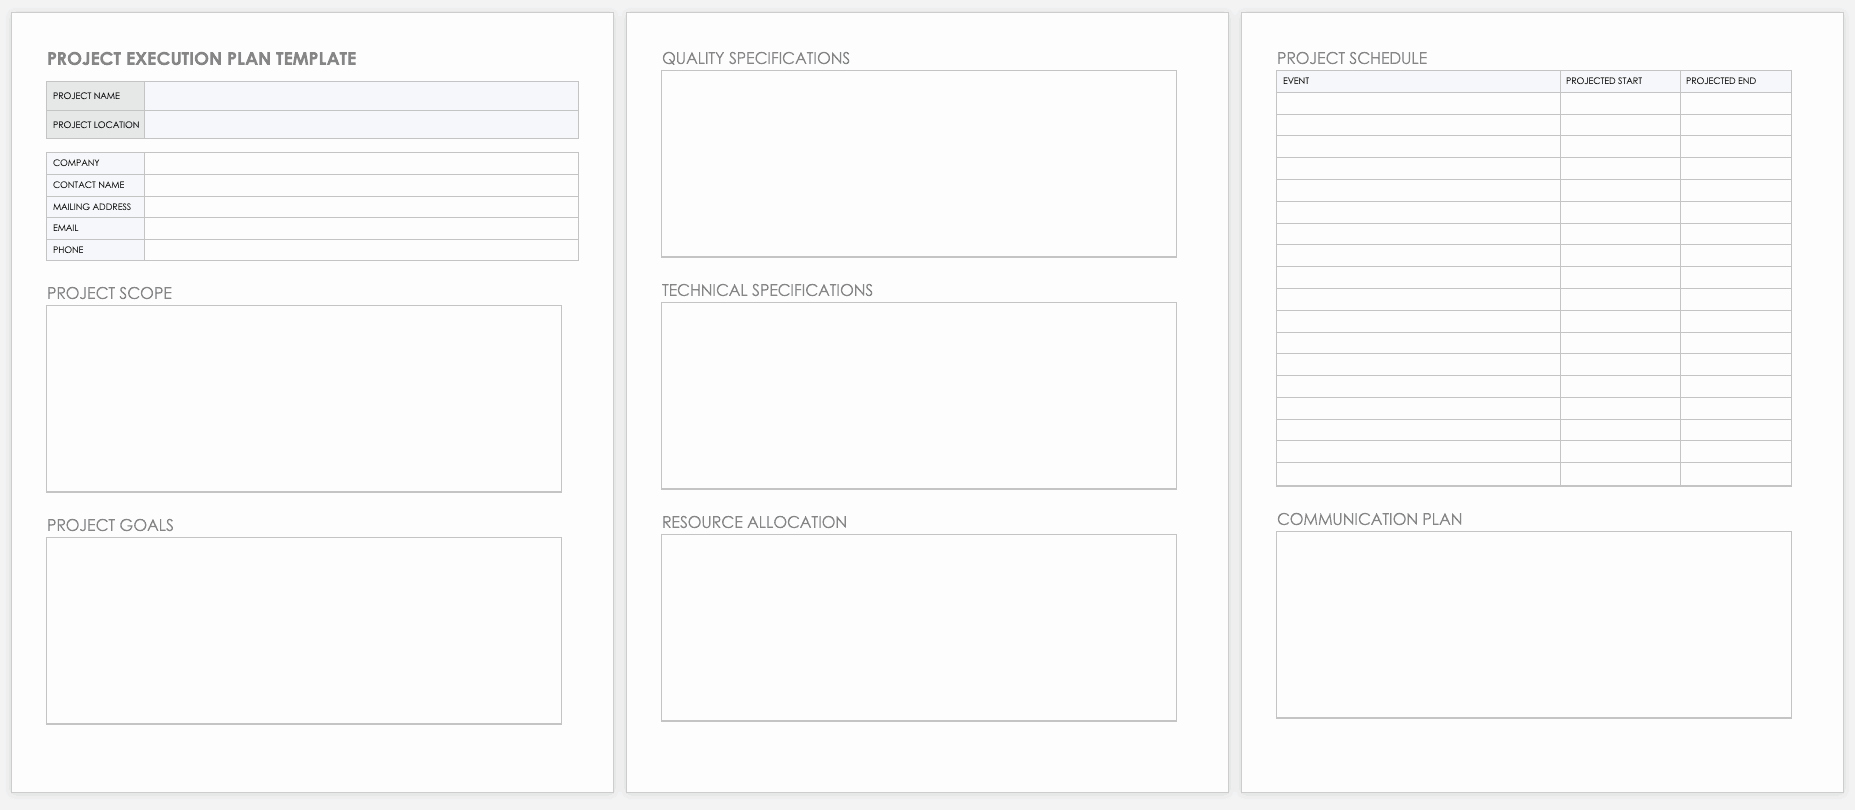 Project Execution Plan Template Awesome Free Project Plan Templates for Word